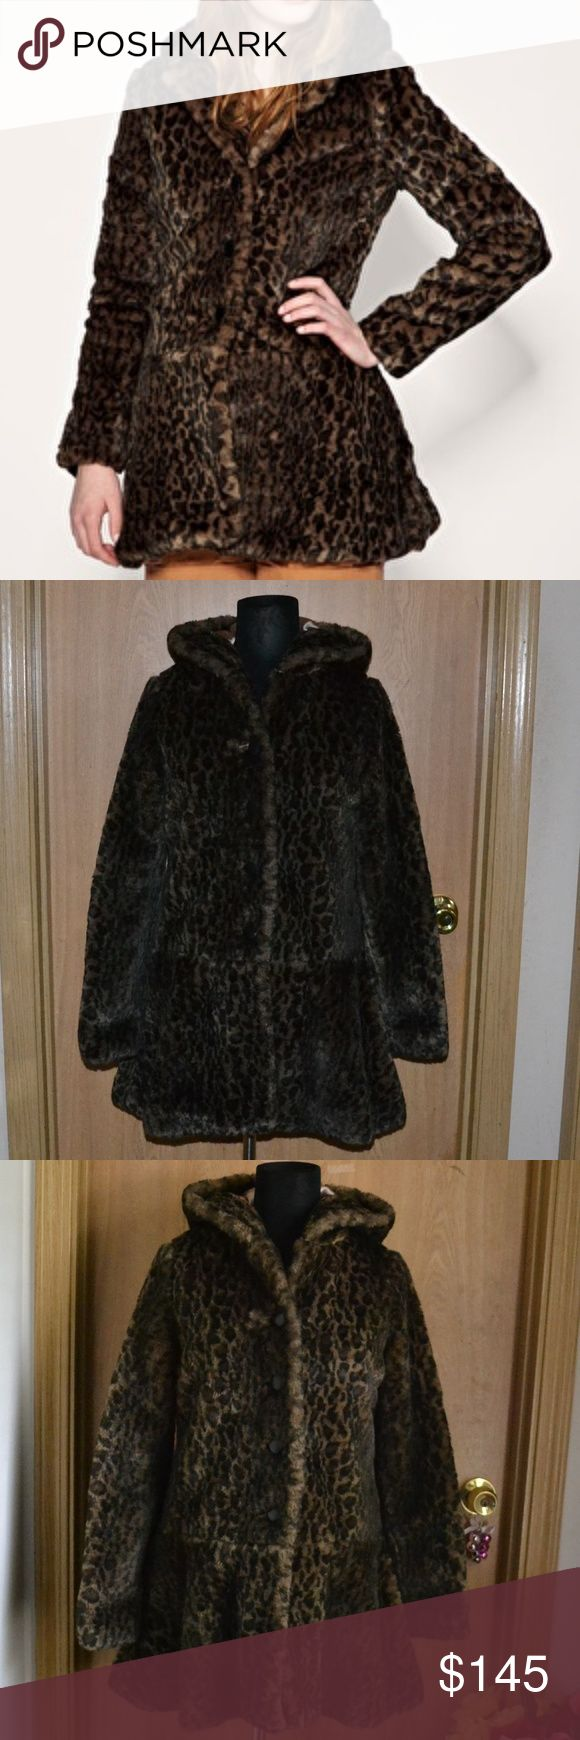 Free People faux leopard fur coat size small Smoke free home! Bundle & save! I ship Monday- Friday~  sold out online!  A gorgeous, super soft faux leopard print jacket with dropped waist size S/P in excellent condition. There are no flaws. Looks luxurious & absolutely beautiful!    Materials: 30% modacrylic 20% polyester  body lining: 95% cotton  5% spandex sleeve lining: 100% aceta Dry clean only. Free people Jackets & Coats